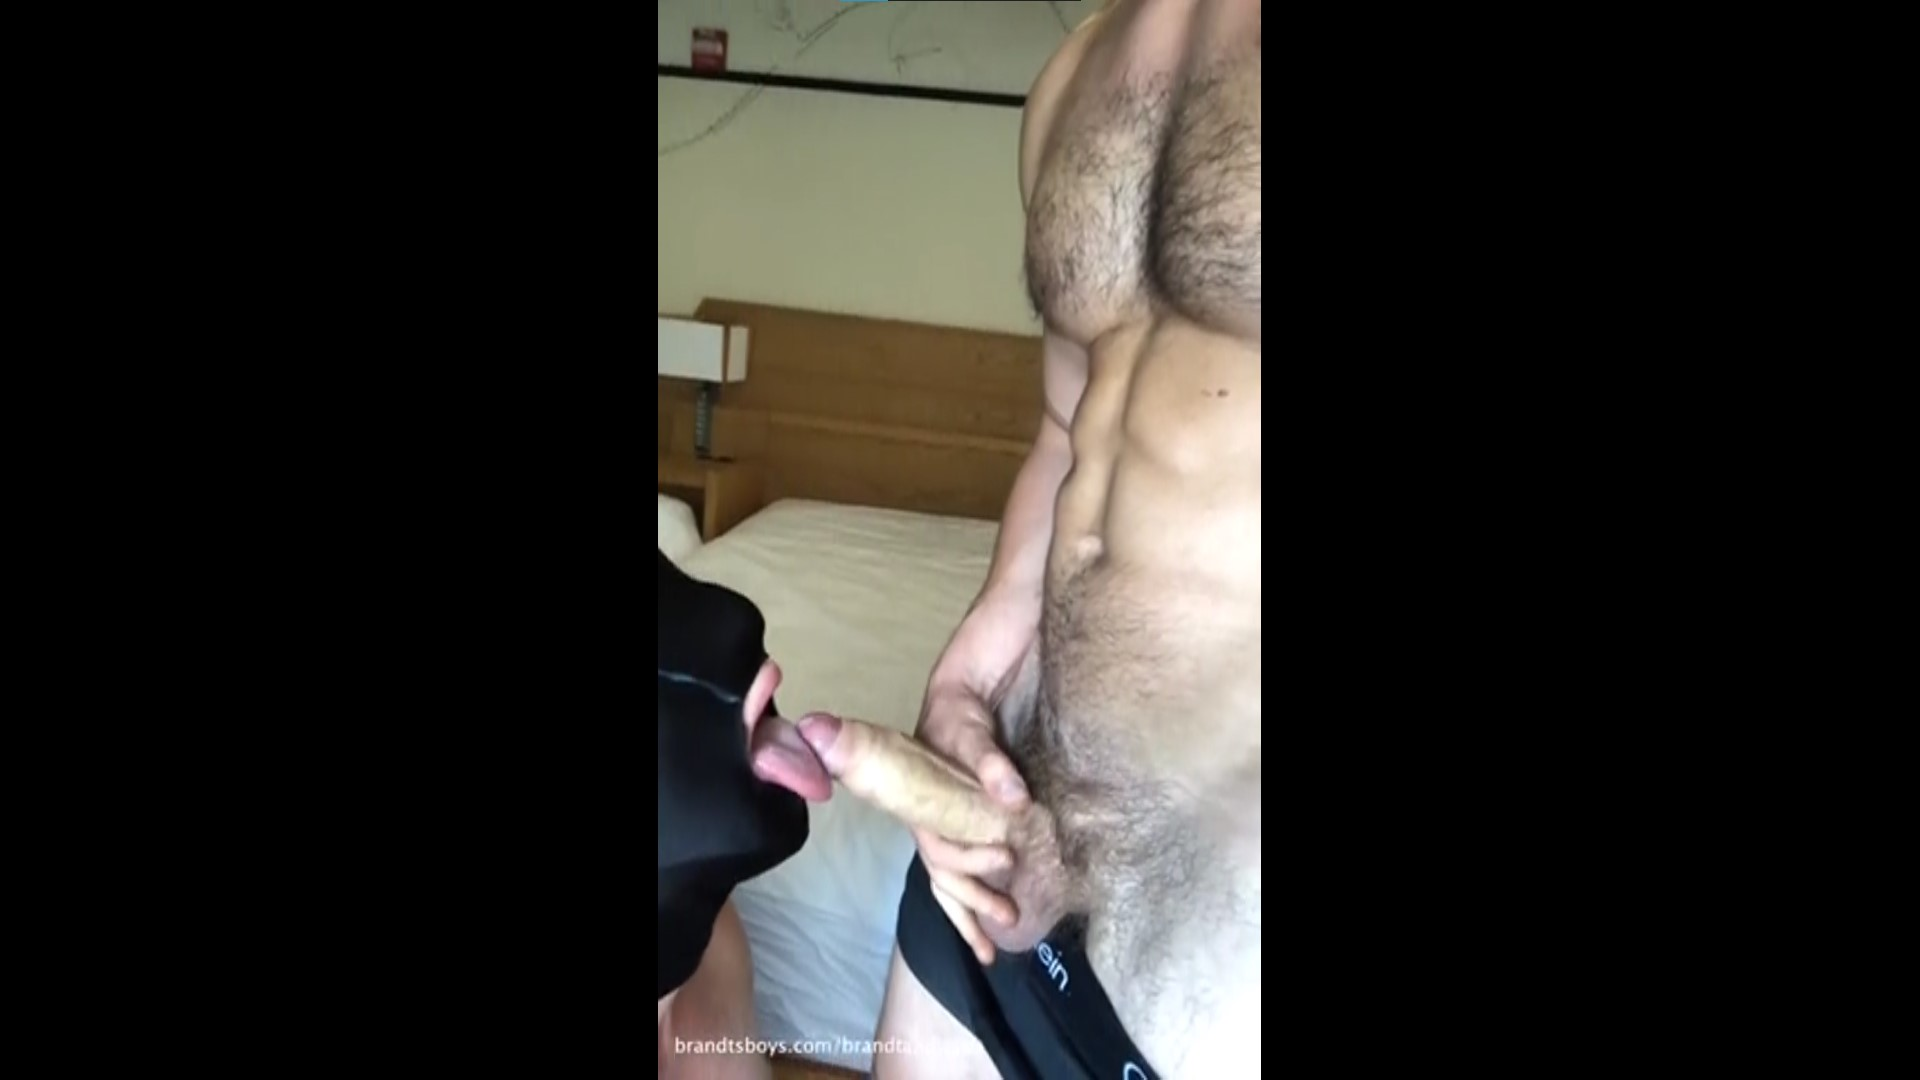 Brandt gives blake a blowjob and begs for his cum - BrandtandNash